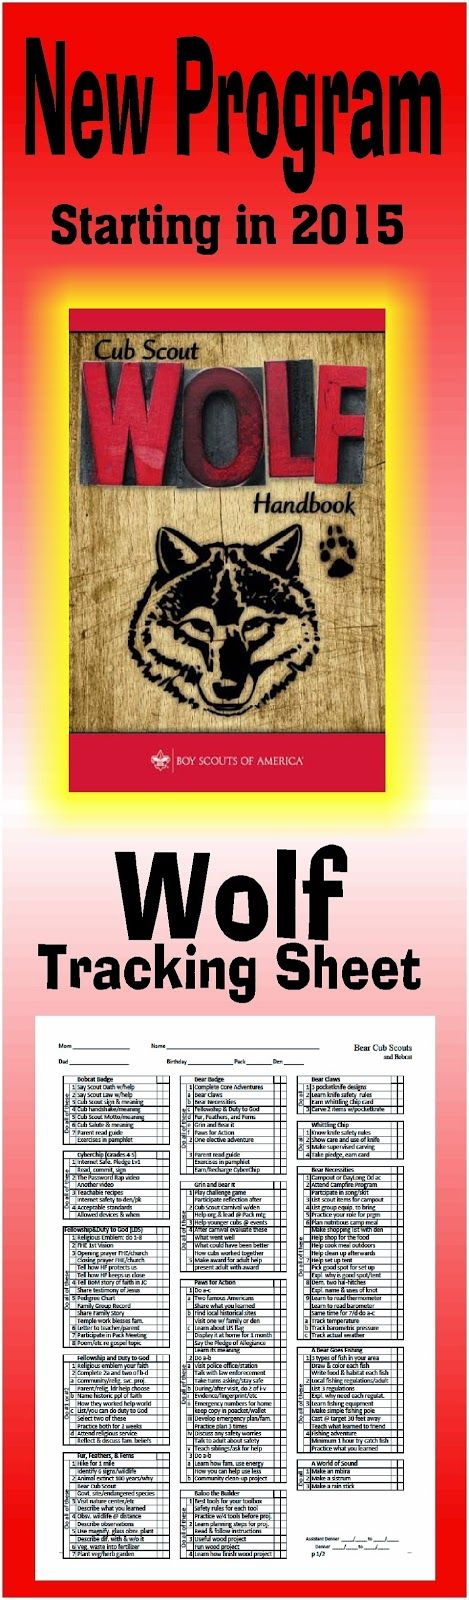 Need a way to track WOLF *, Cyber Chip and Adventure requirements for the NEW Cub Scout Program? This is a great free PRINTABLE Tracking sheet for Organizing. This site has other tracking sheets and a lot of great Cub Scout Ideas compliments of Akelas Council Cub Scout Leader Training. Utah National Parks Council has planned this exciting 4 1/2 day Cub Scout Leader Training that covers lots of Cub Scout Info and Webelos Outdoor Experience, and much more. For more info go to AkelasCouncil.com